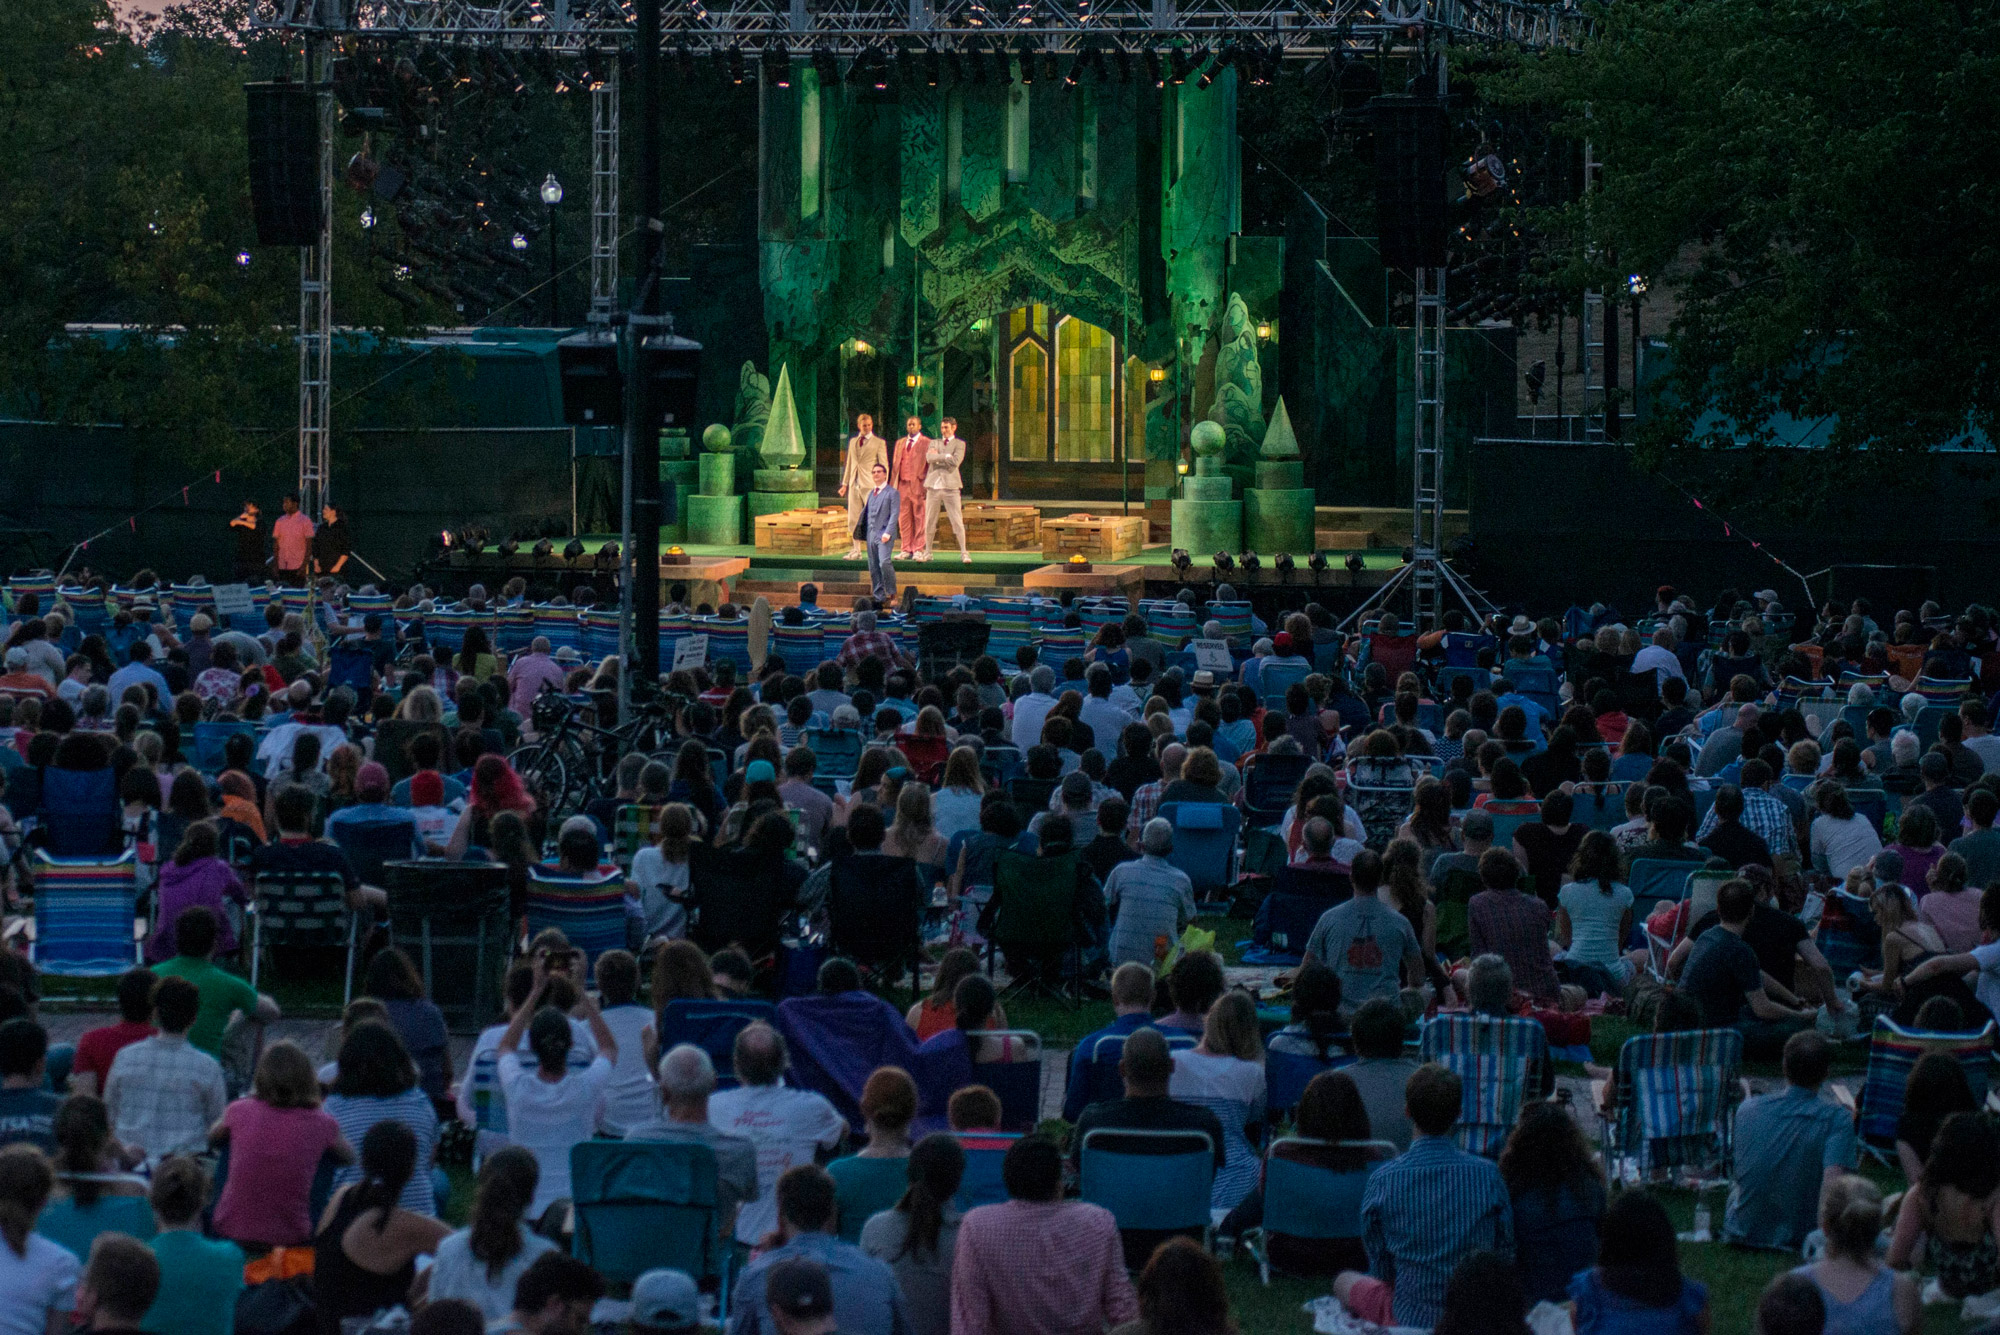 a crowd watches the Last year Commonwealth Shakespeare Company perform onstage